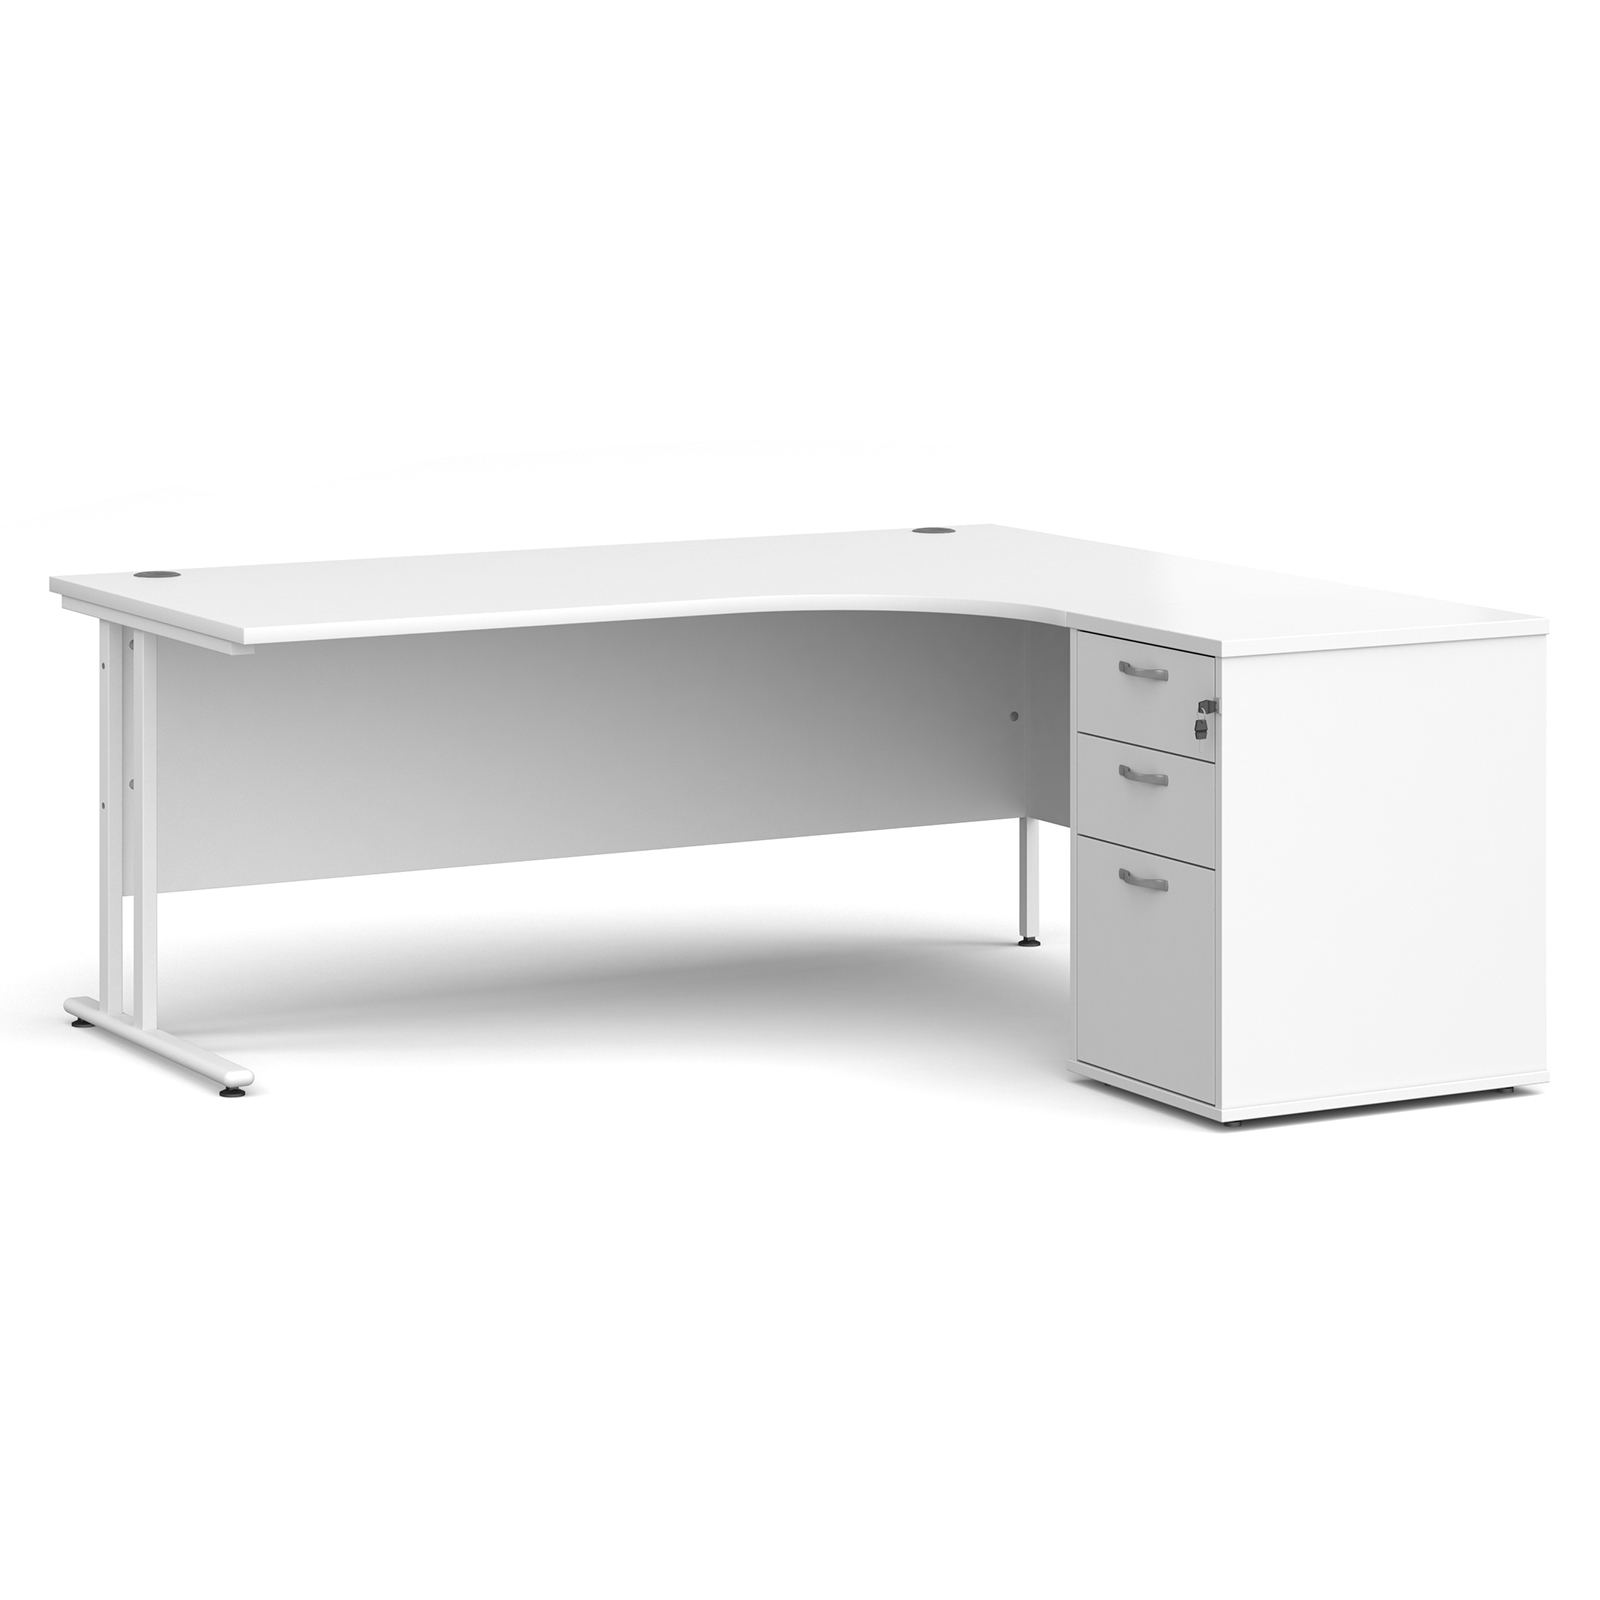 Right Handed Maestro 25 right hand ergonomic desk 1800mm with white cantilever frame and desk high pedestal - white